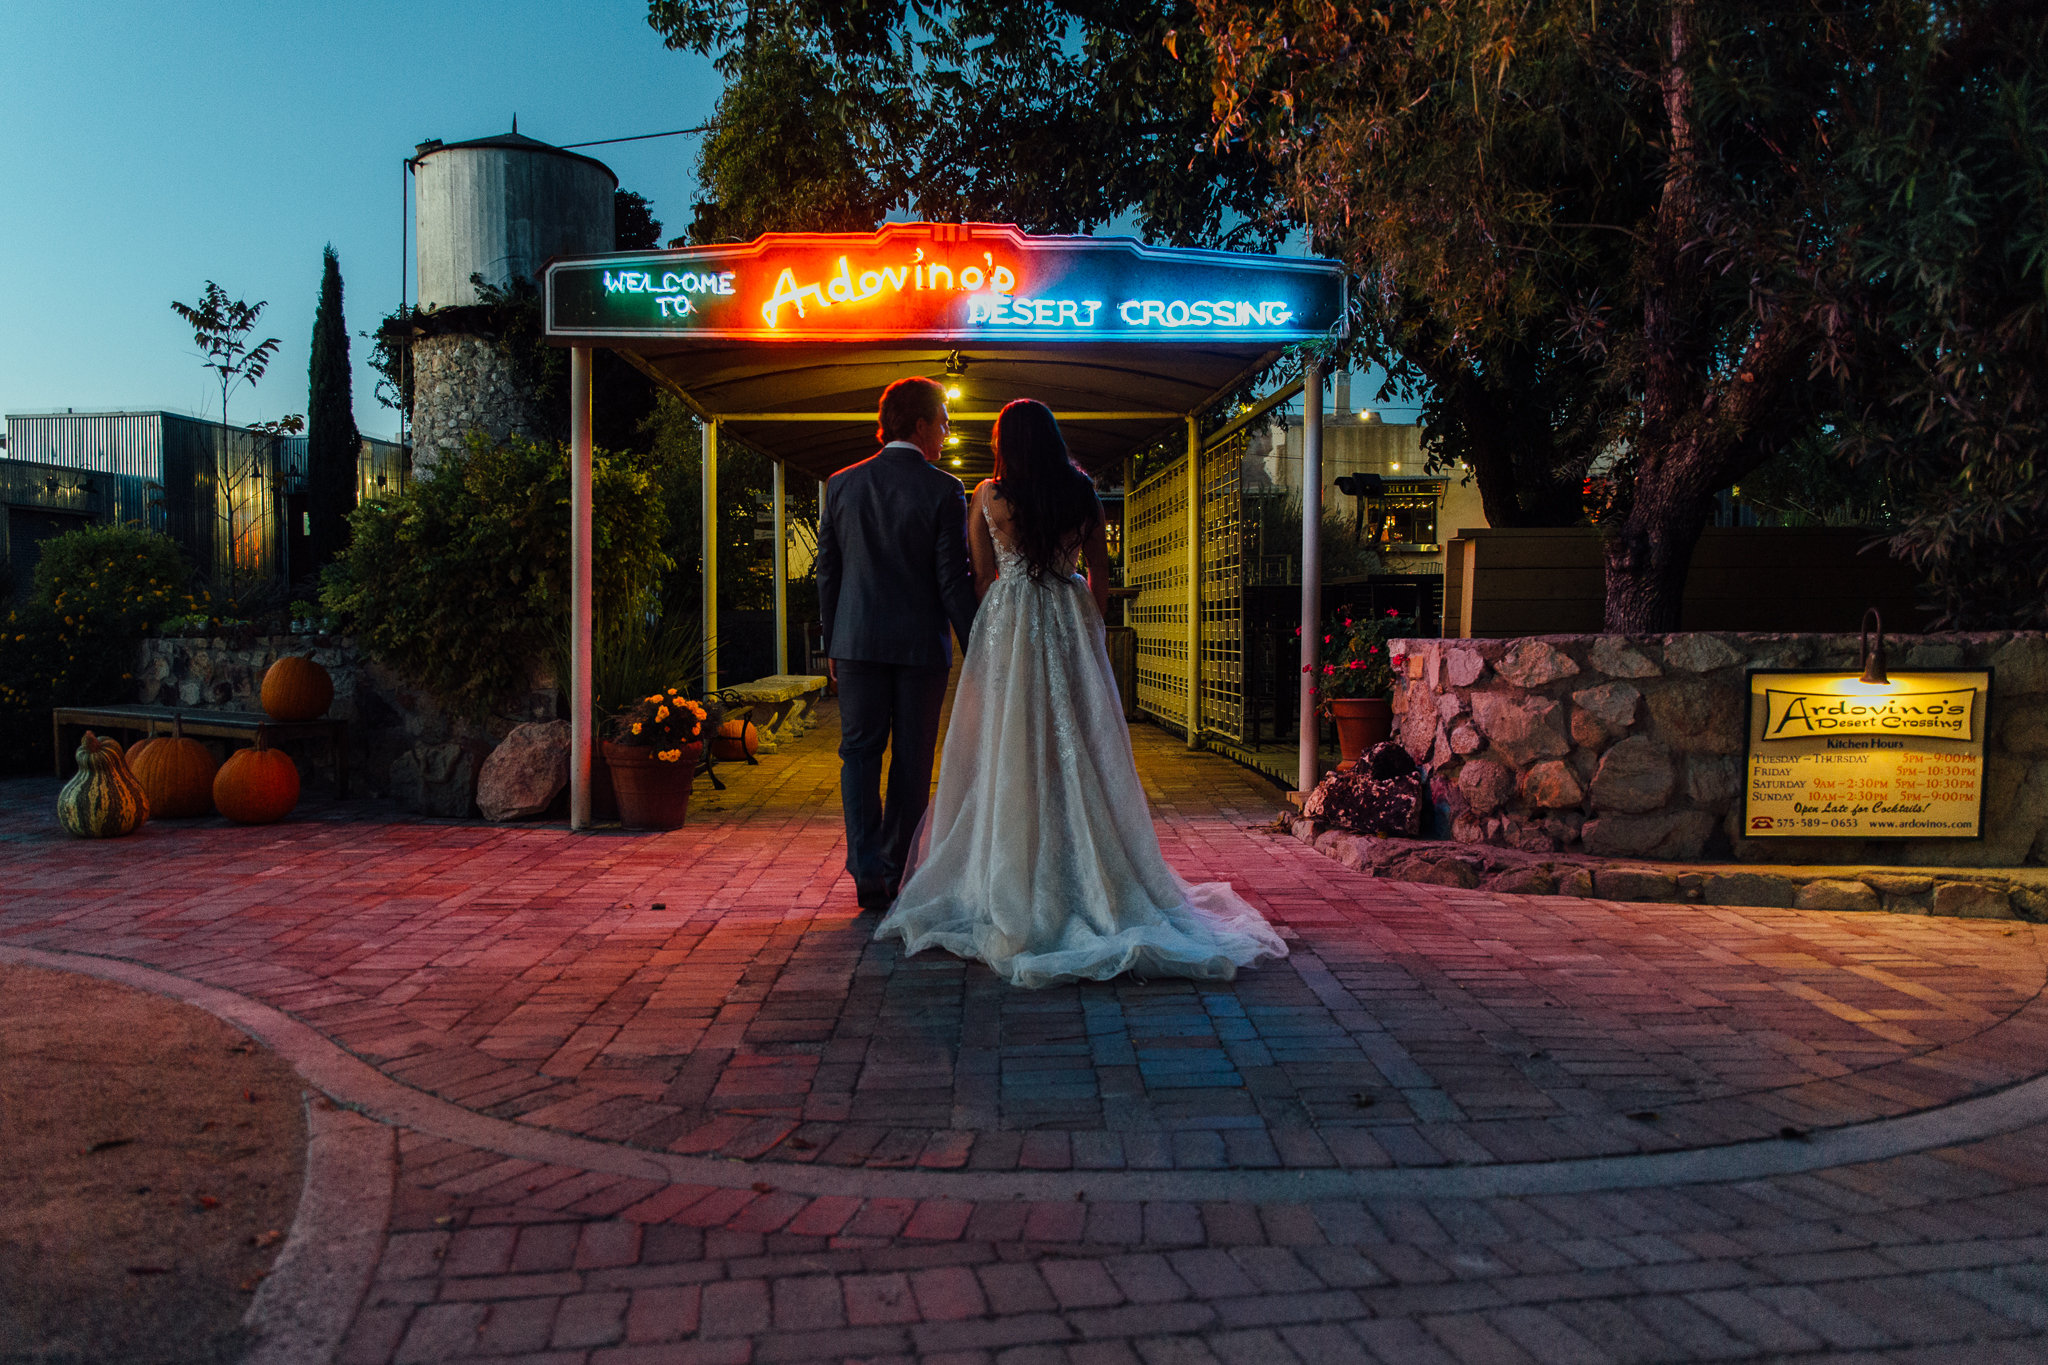 el-paso-wedding-photographer-175.jpg